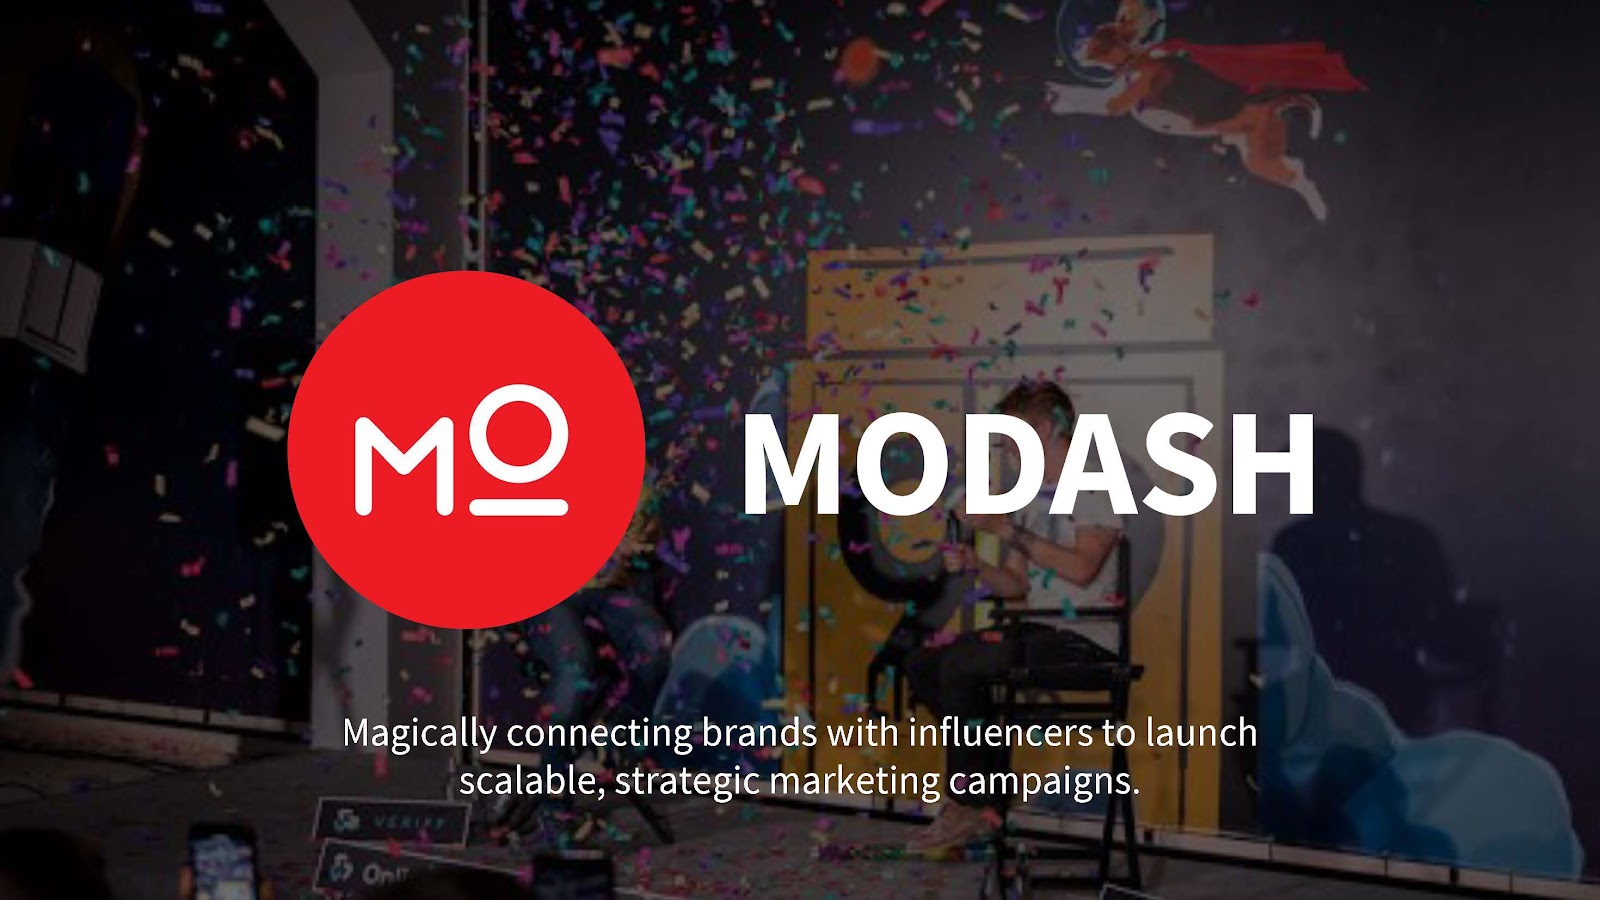 Modash Magically connecting brands with influencers to launch scalable strategic marketing campaigns.